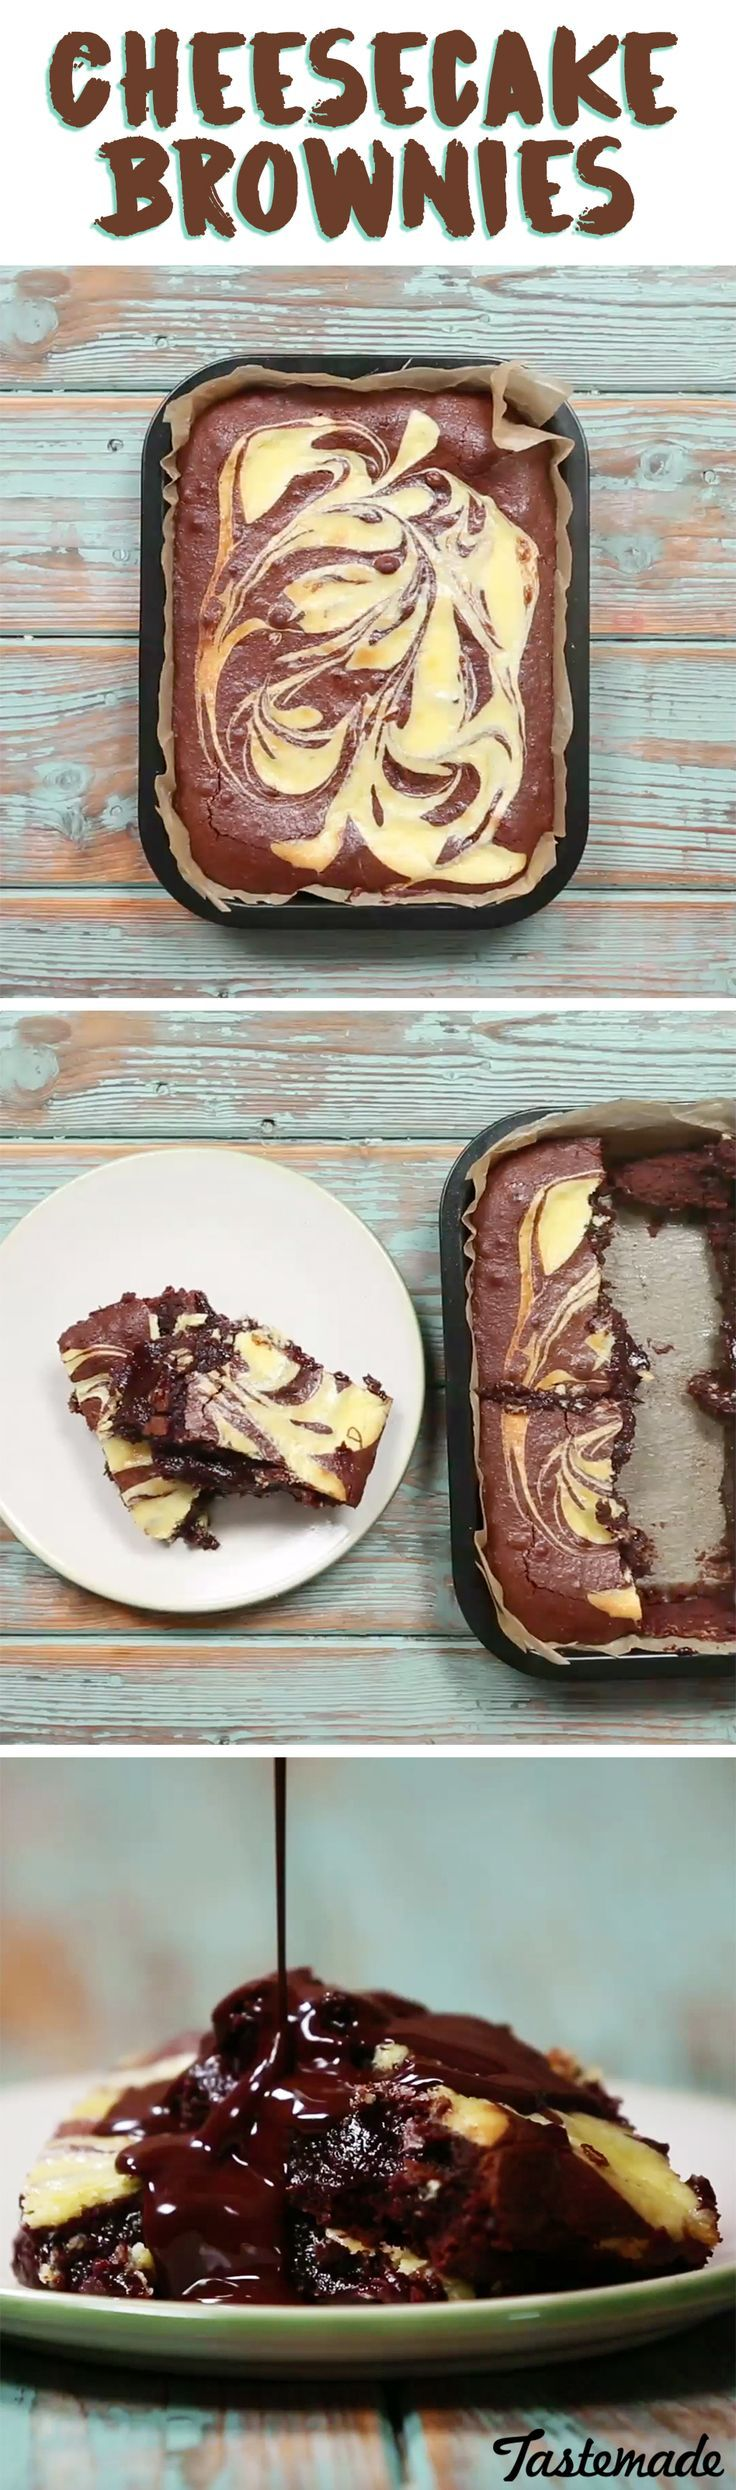 Chocolate cheesecake just can't compare to these warm, fudgy cream cheese brownies.